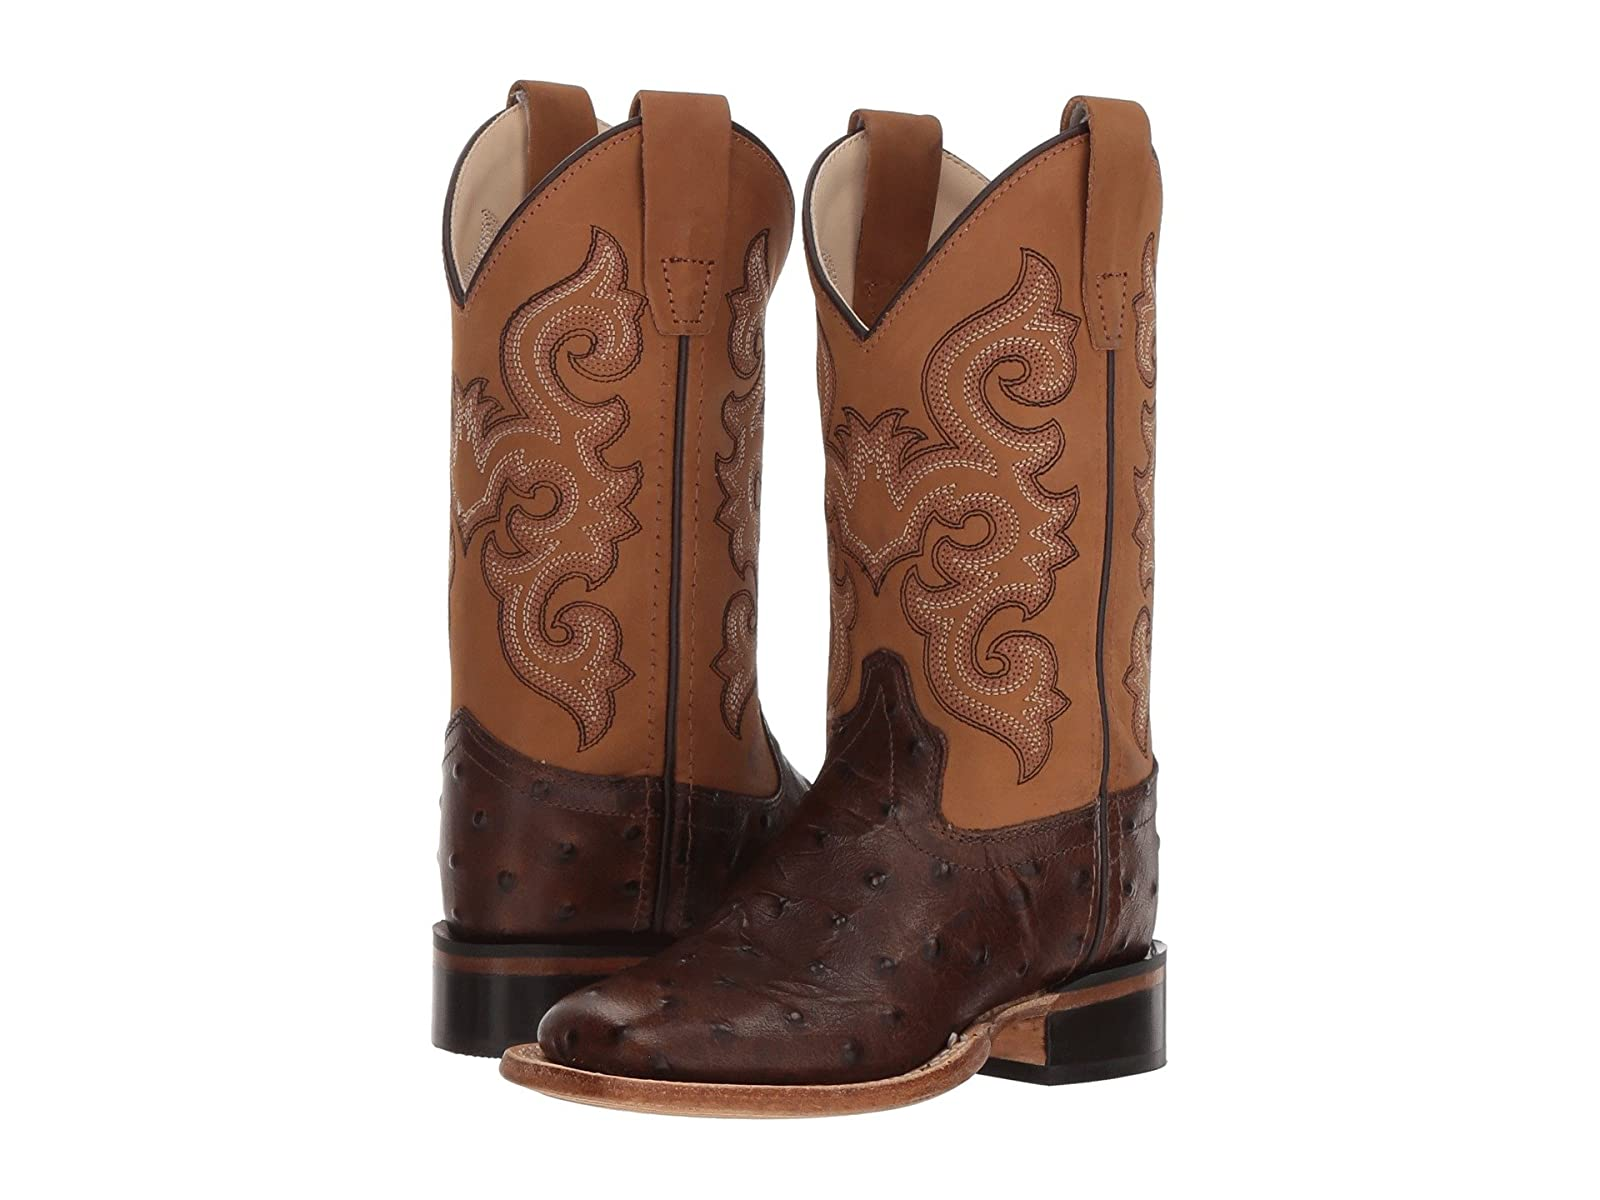 Old West Kids Boots Ostrich Print Square Toe (Toddler/Little Kid)Economical and quality shoes